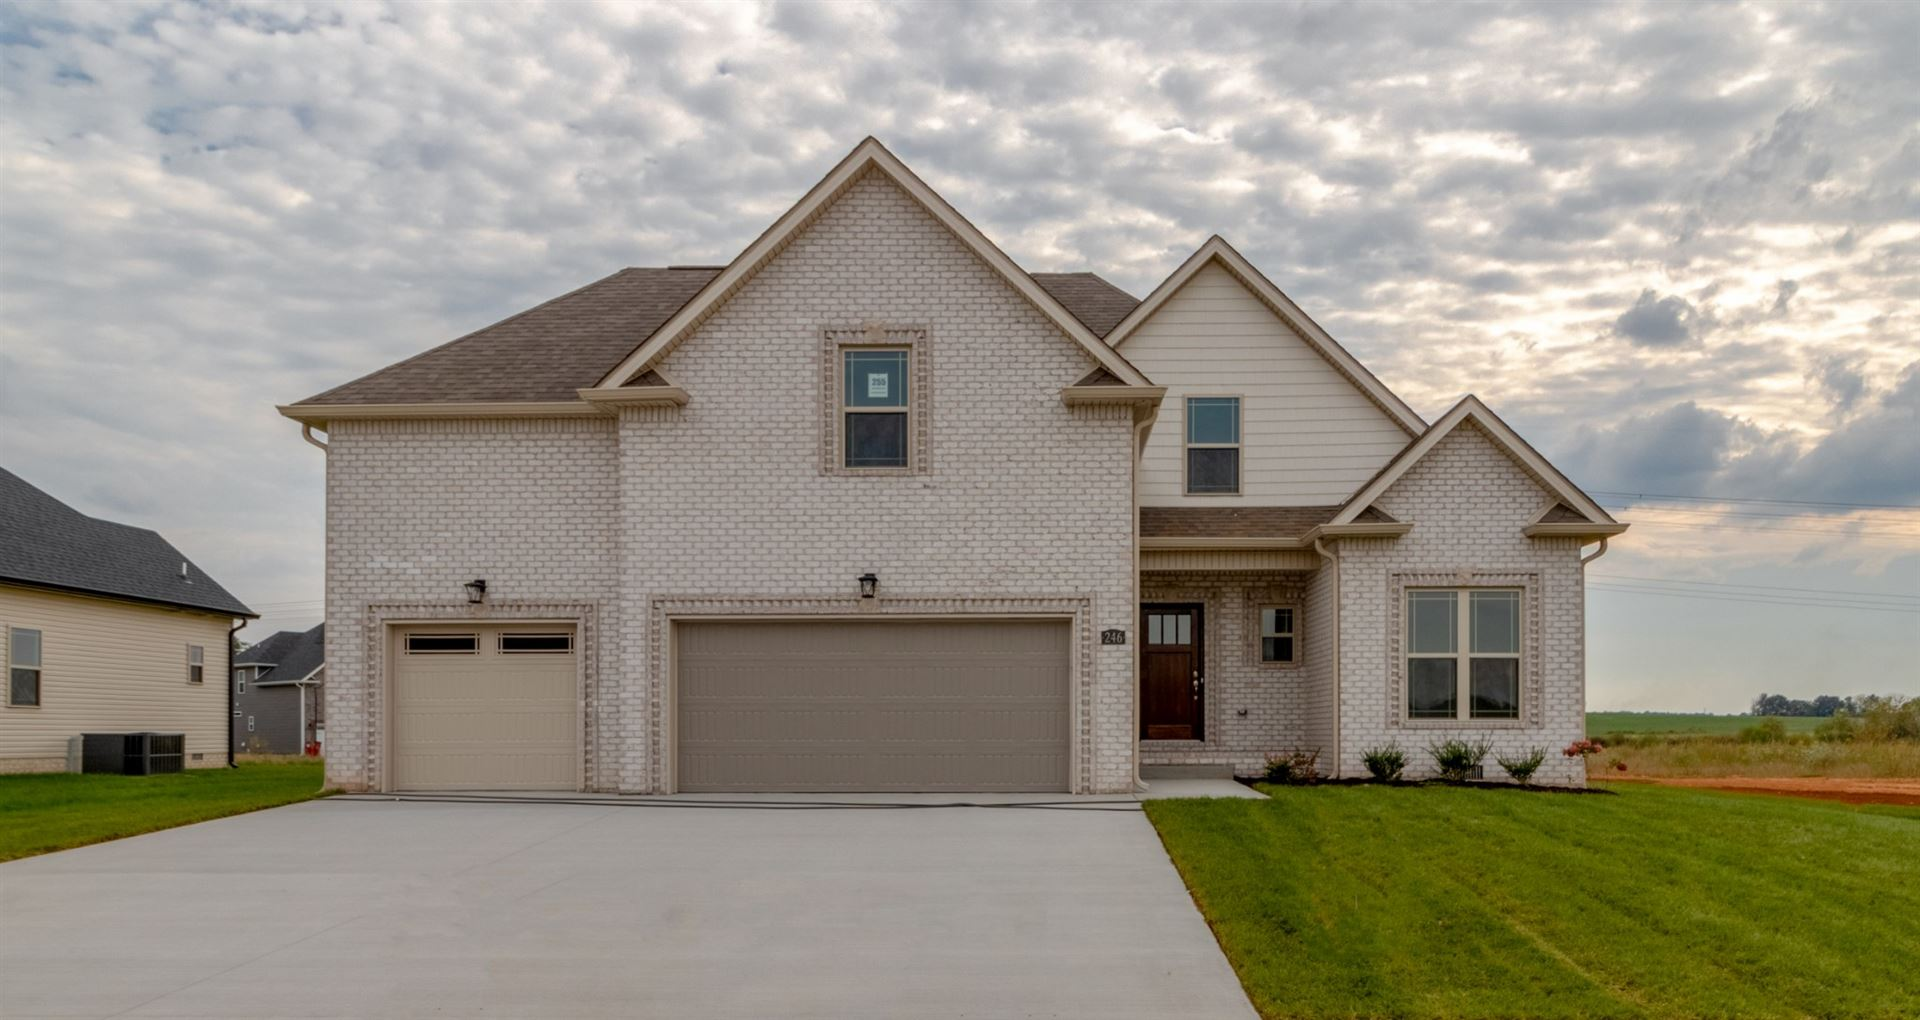 255 Wellington Fields, Clarksville, TN 37043 - MLS#: 2238582